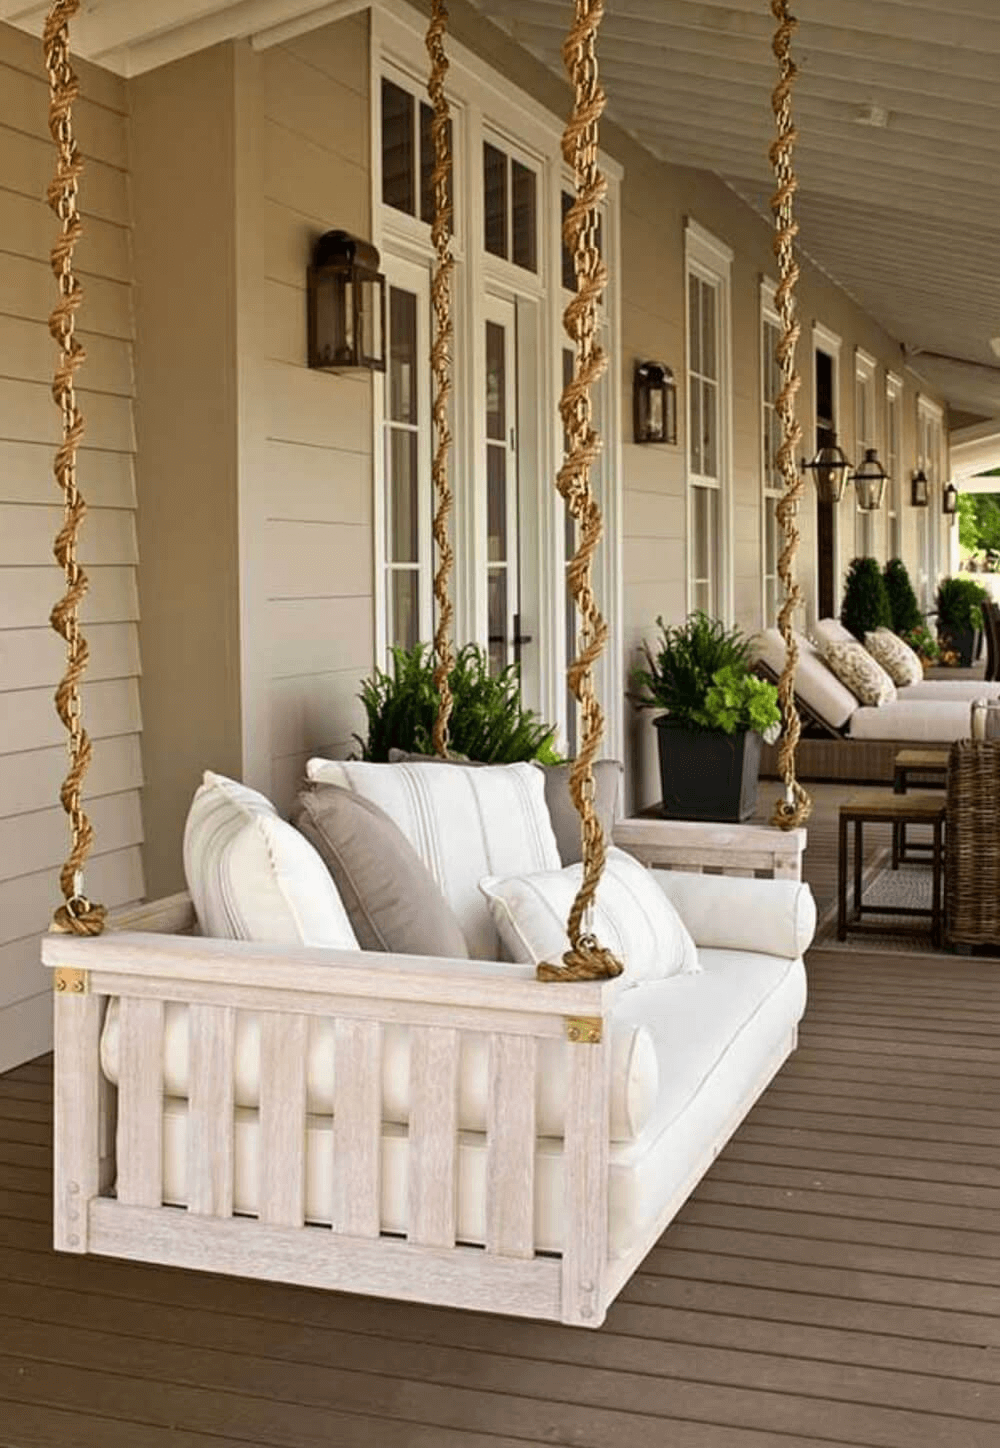 FARMHOUSE PORCH DESIGN IDEAS WITH SWING